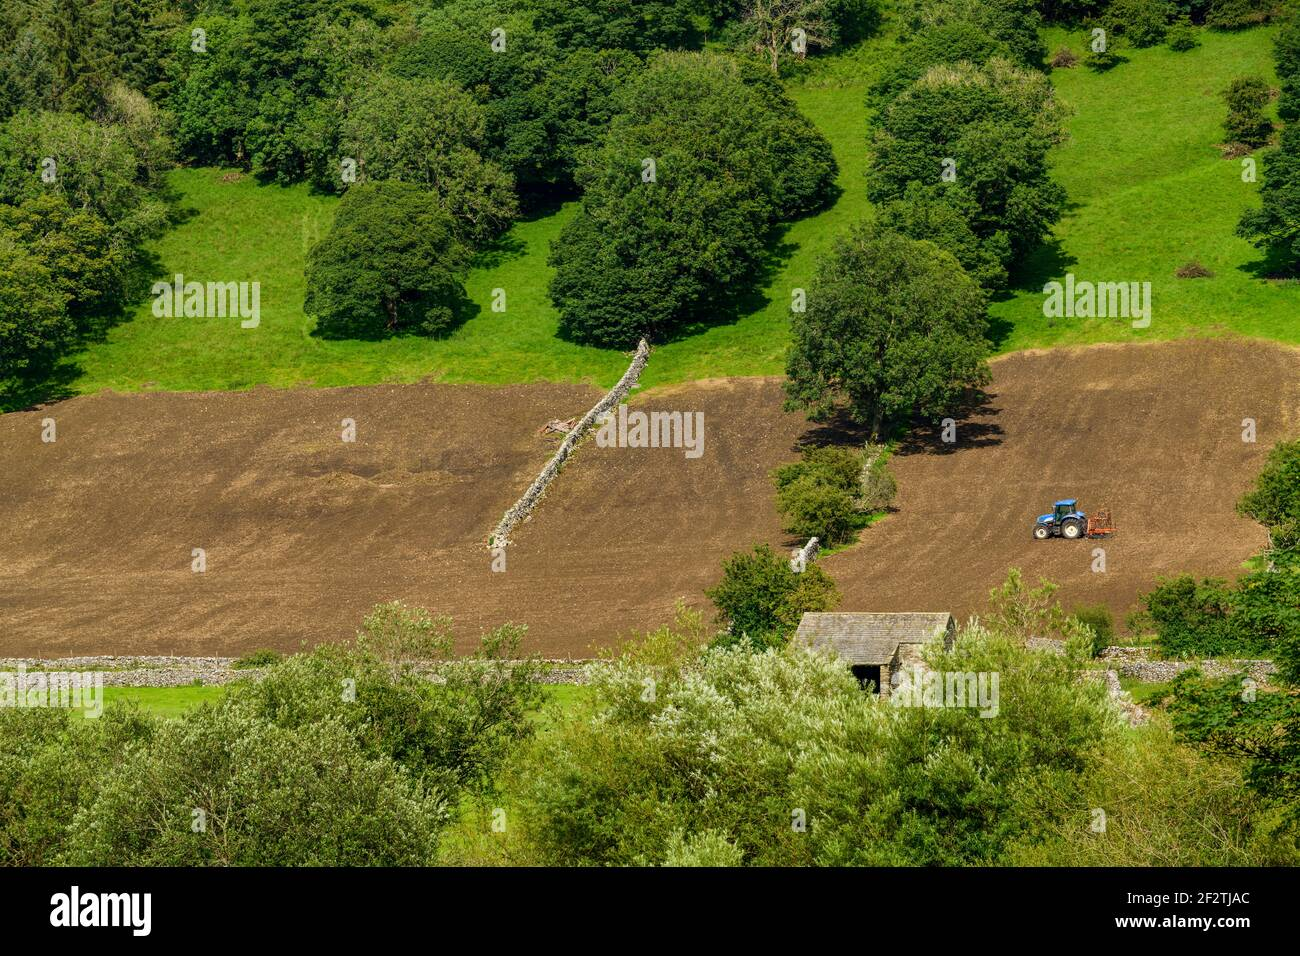 Tractor working on high slopes of scenic steep-sided hillside field (tilling harrowing soil for seeding) - Wharfe Valley, North Yorkshire, England UK. Stock Photo